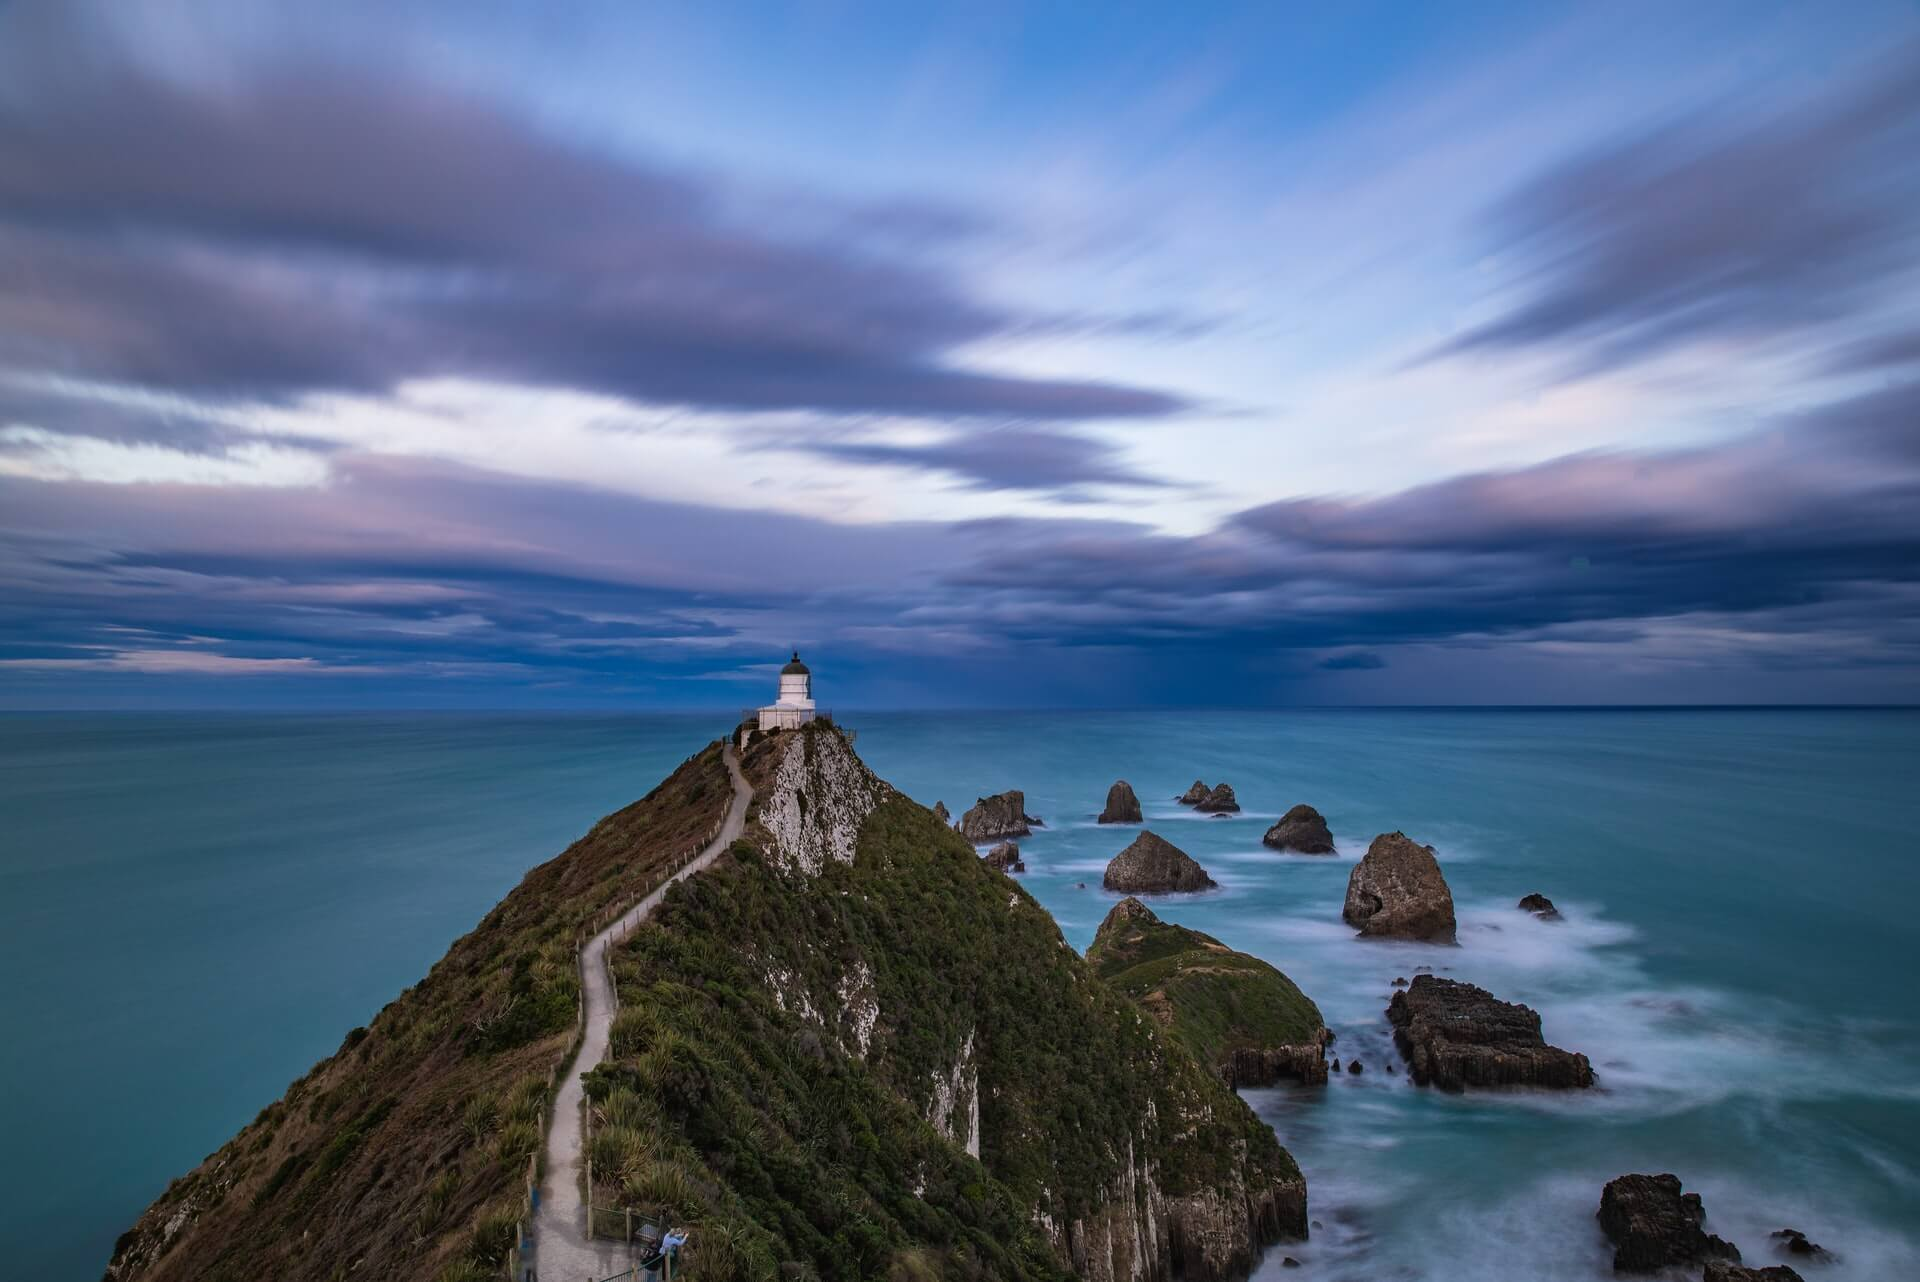 A moody sunrise on the Southern Scenic Route of New Zealand's South Island